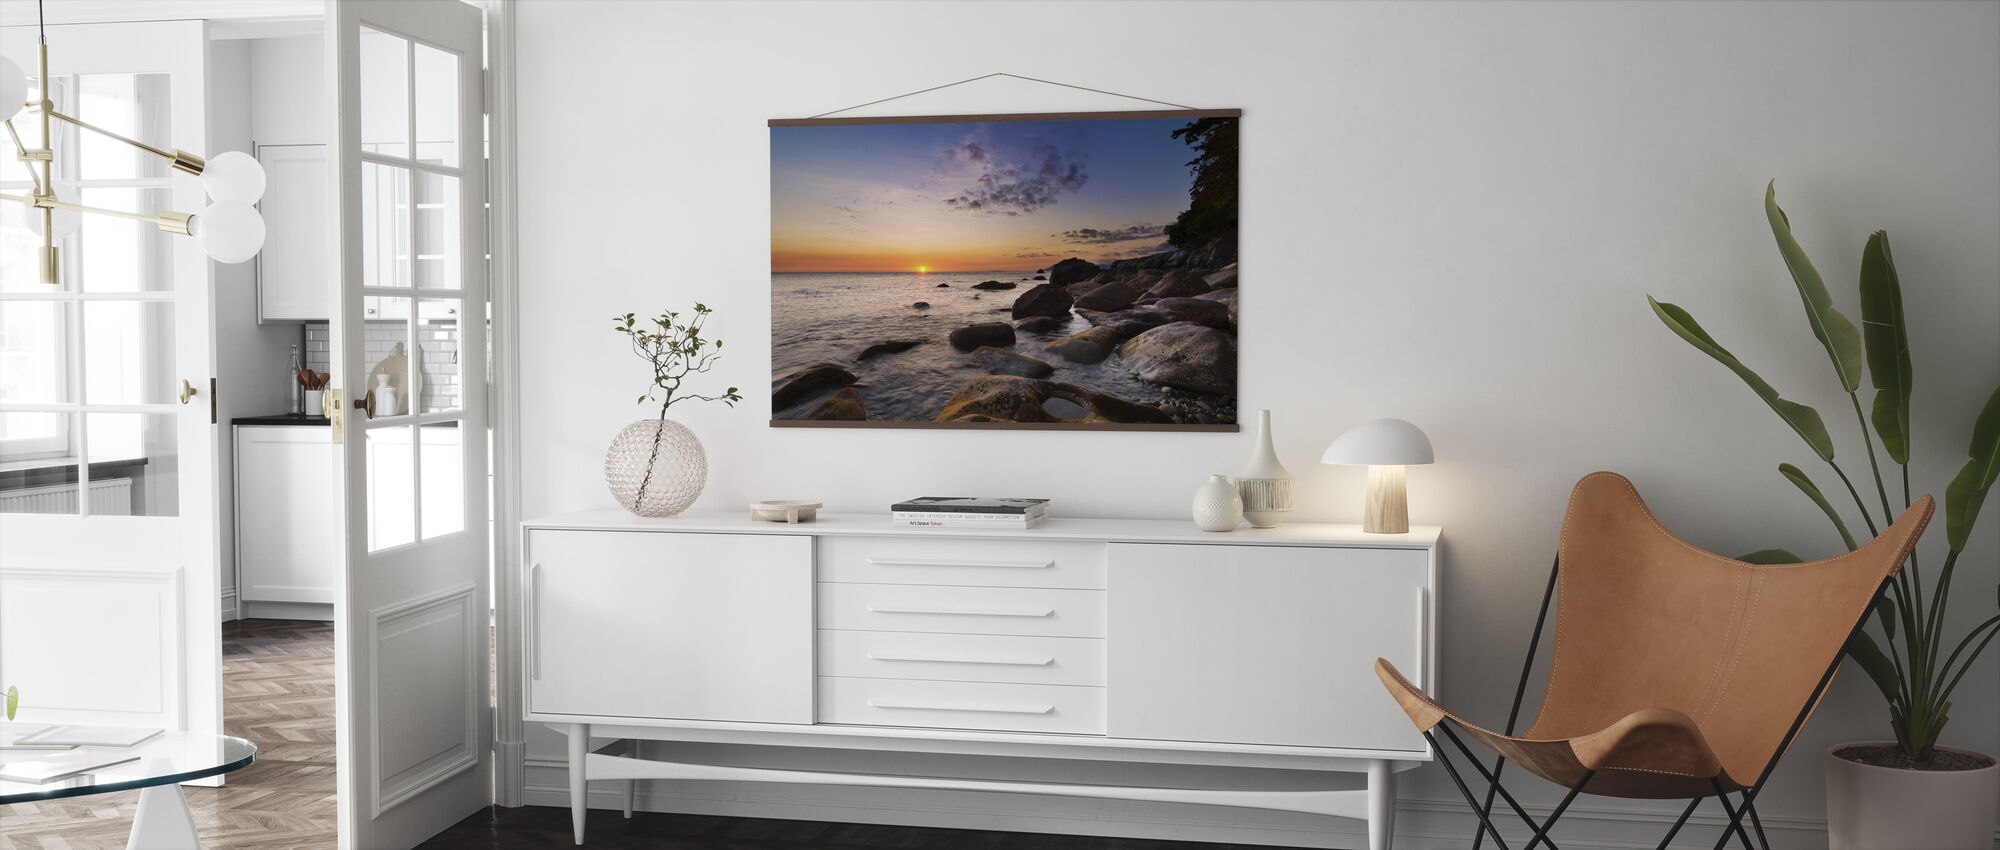 Sunset at Surigao - Poster - Living Room